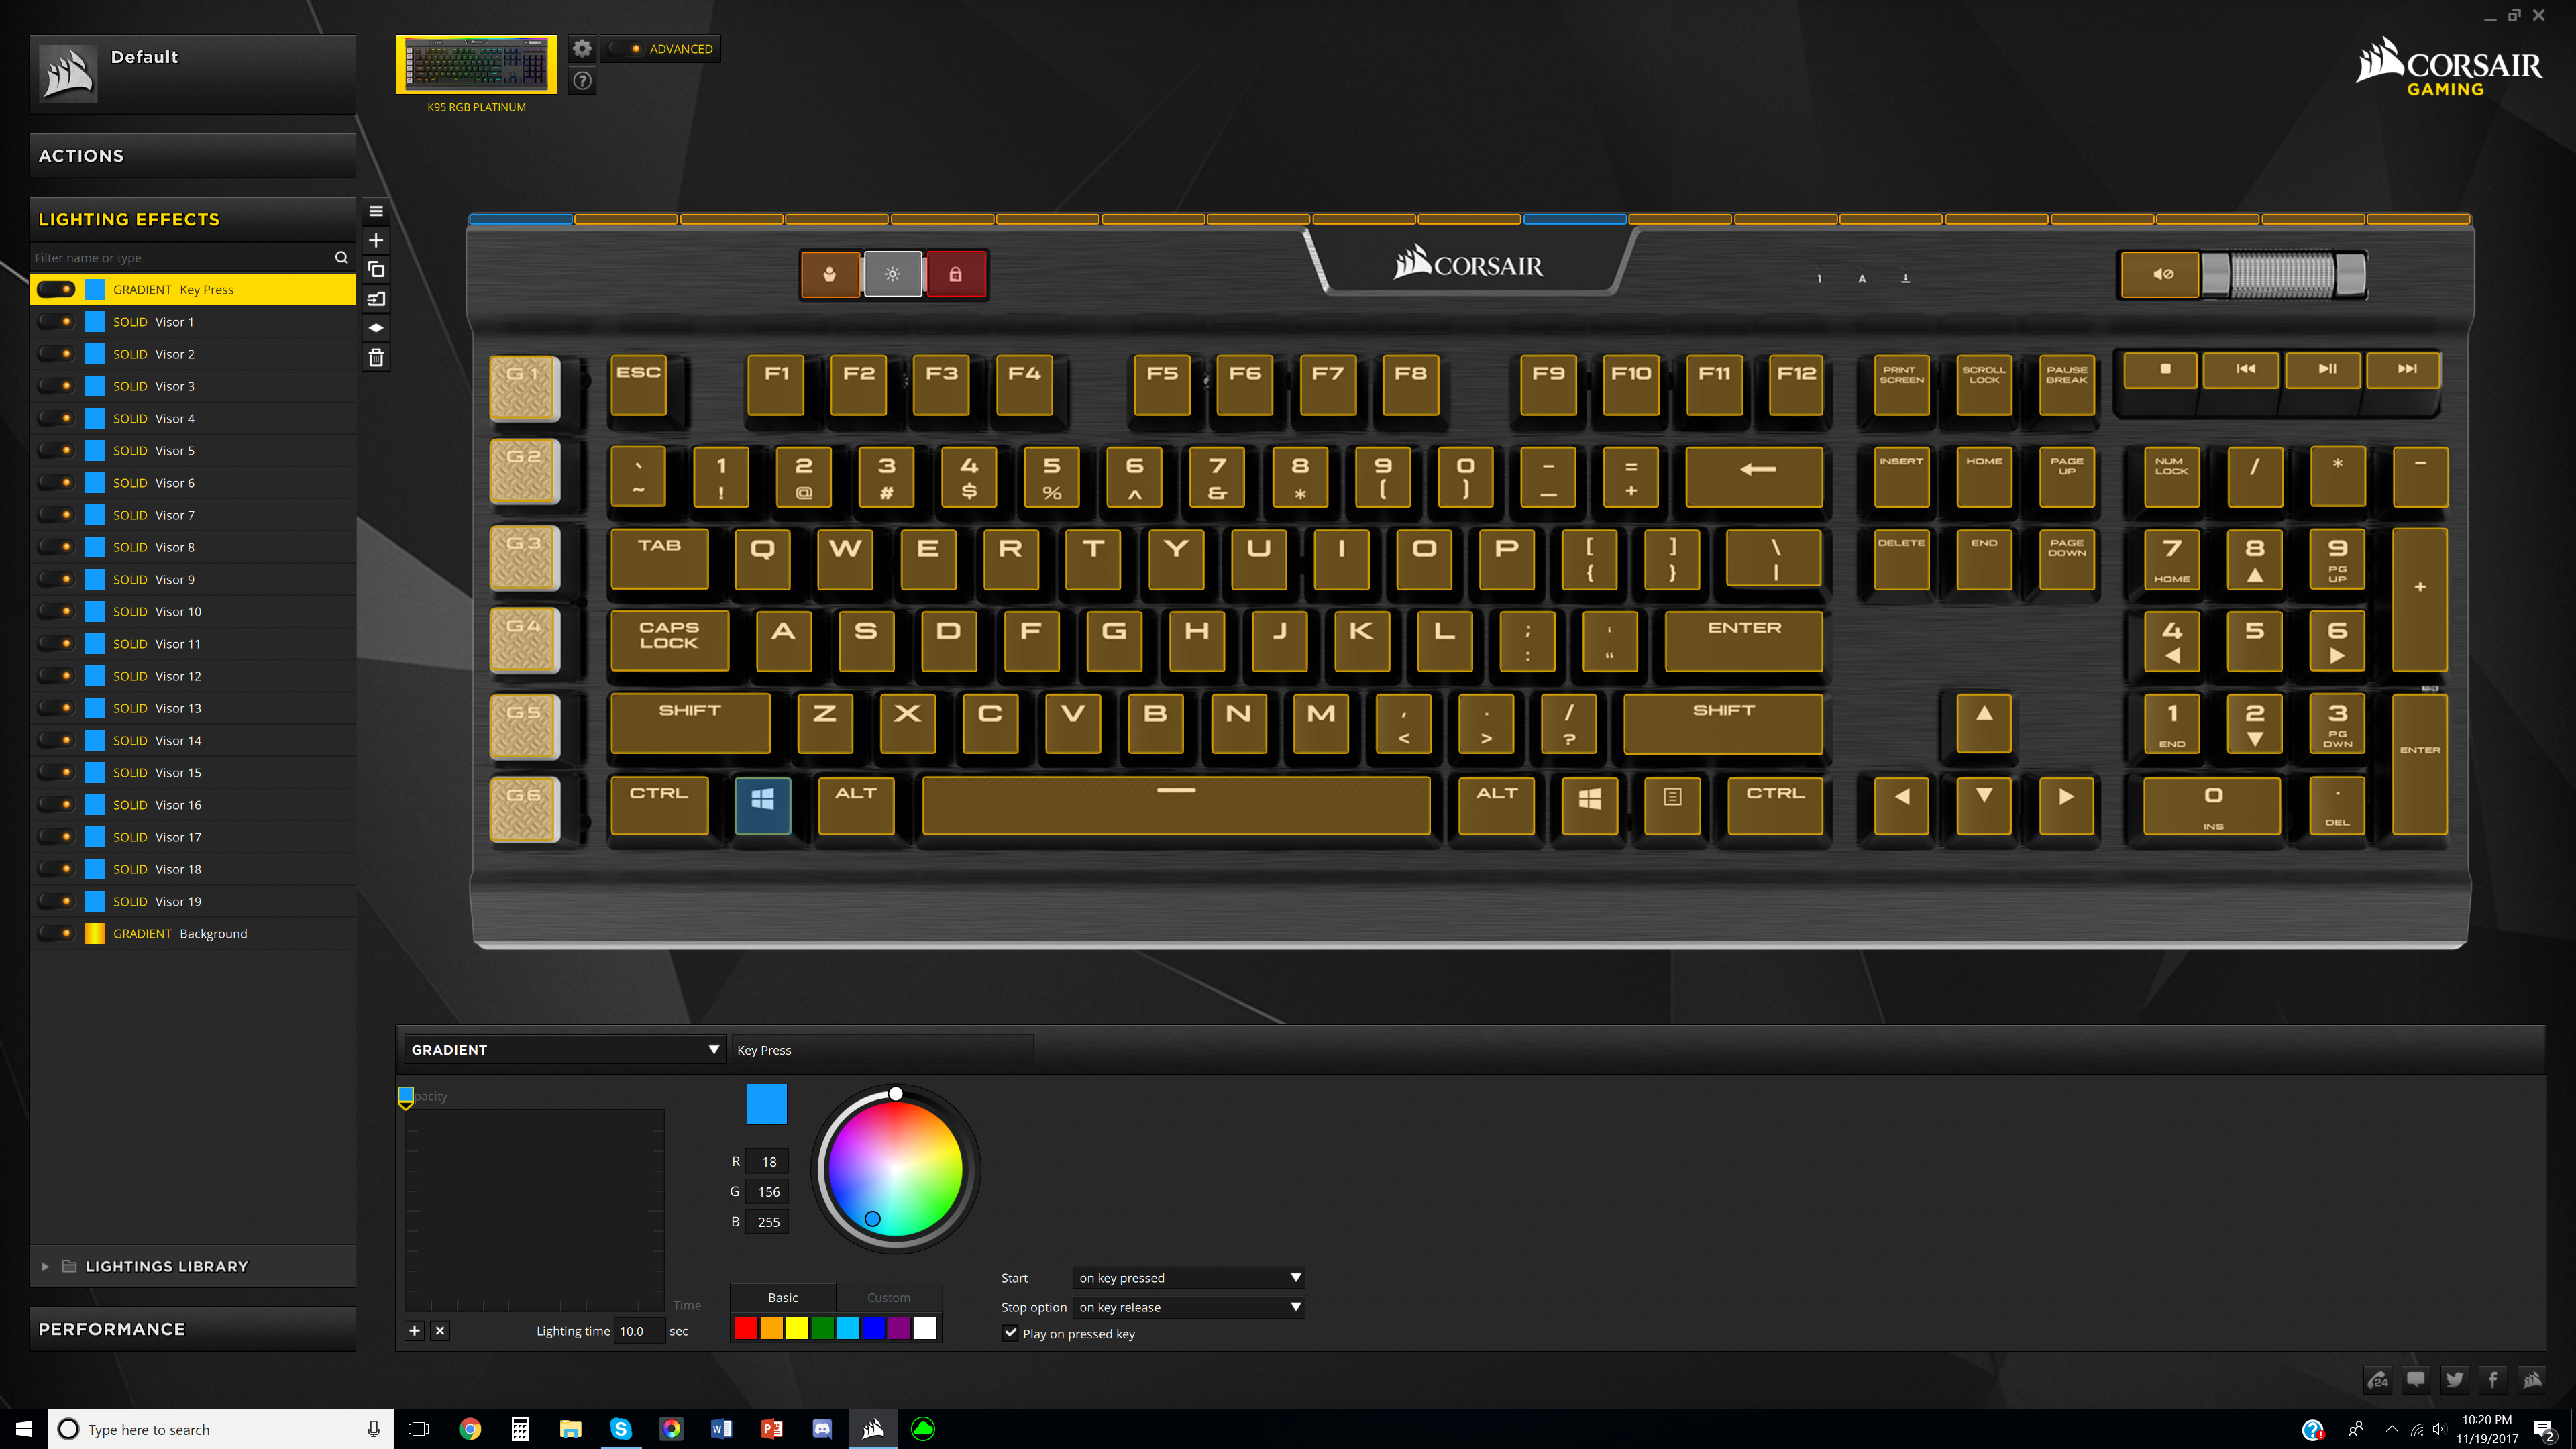 How do I make all my effects into one effect on my k95 RGB Platinum